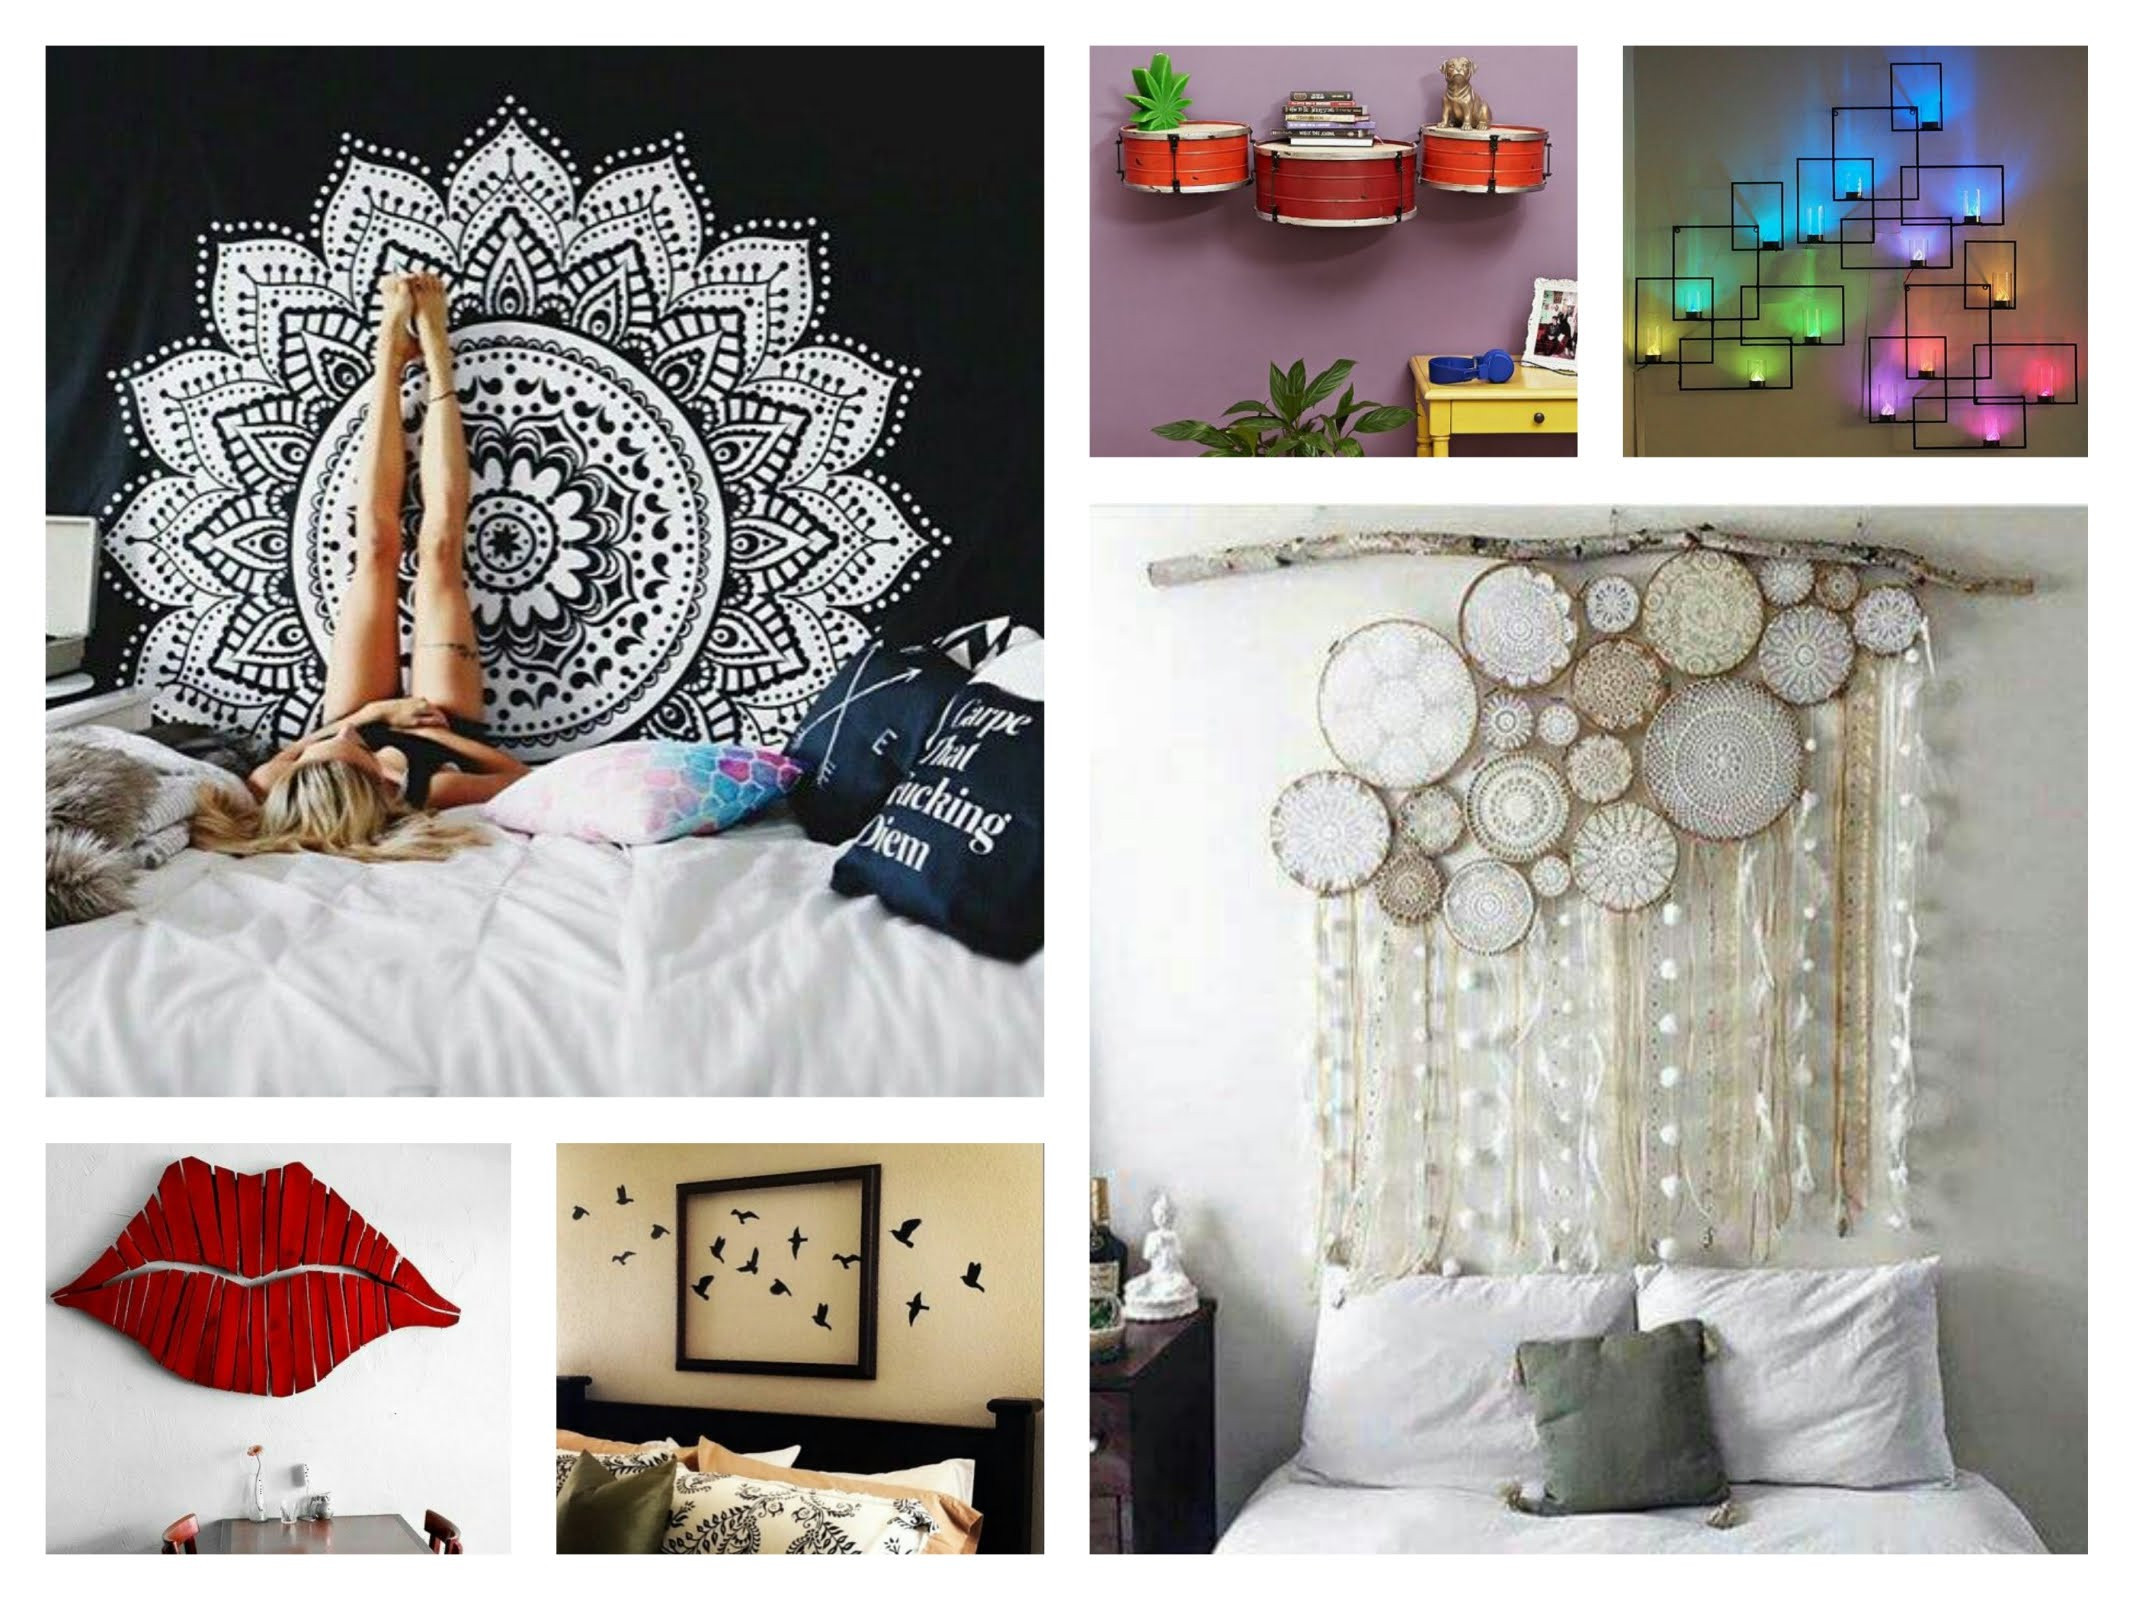 Best ideas about How To Decorate Your Room DIY . Save or Pin 5 Creative Ideas for Decorating Walls Dap fice Now.